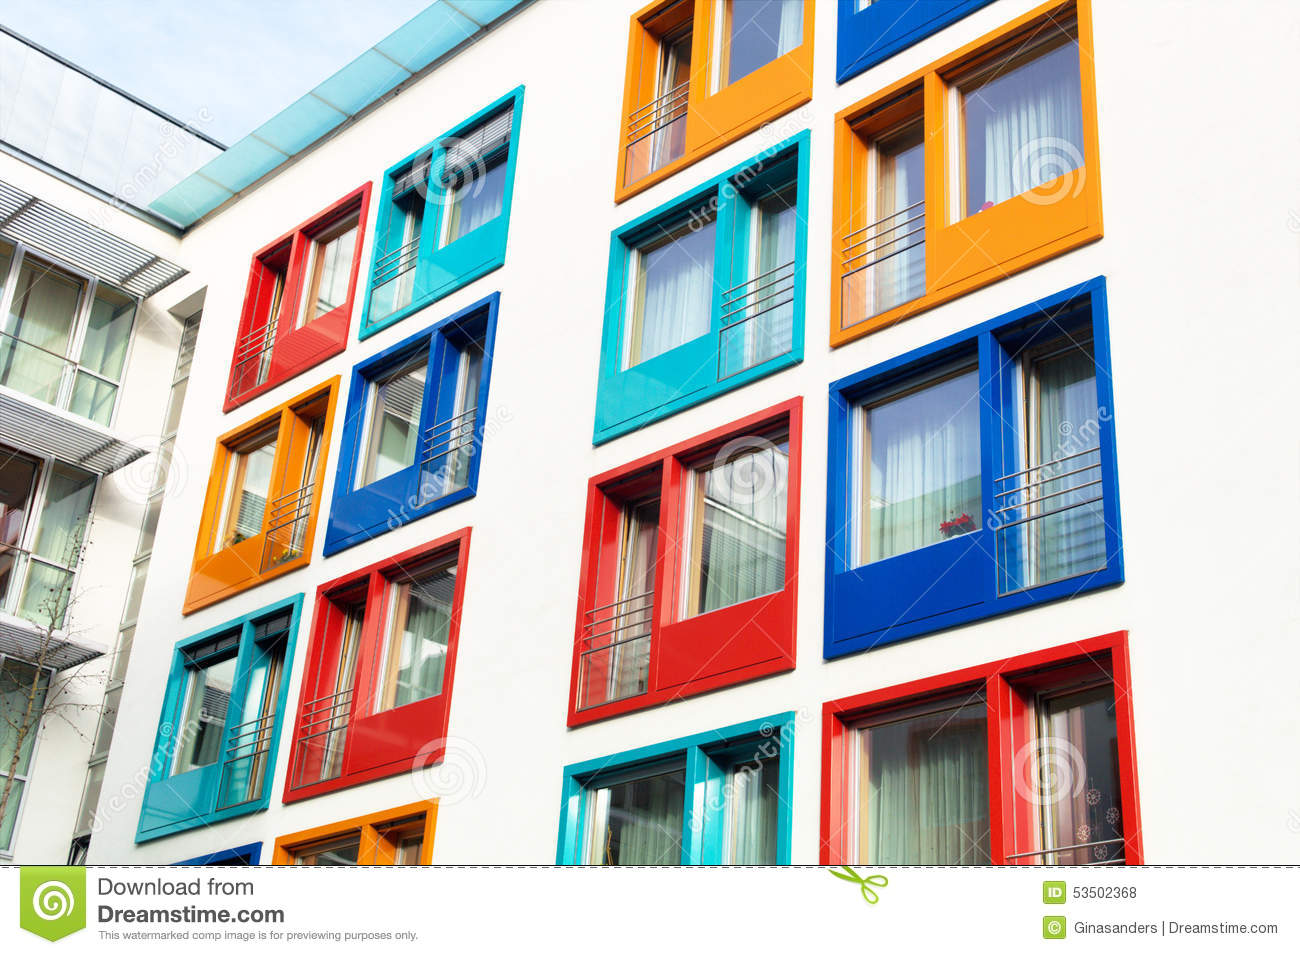 Royalty Free Stock Photo  Download Colorful Facade Of Modern Apartment Building Image